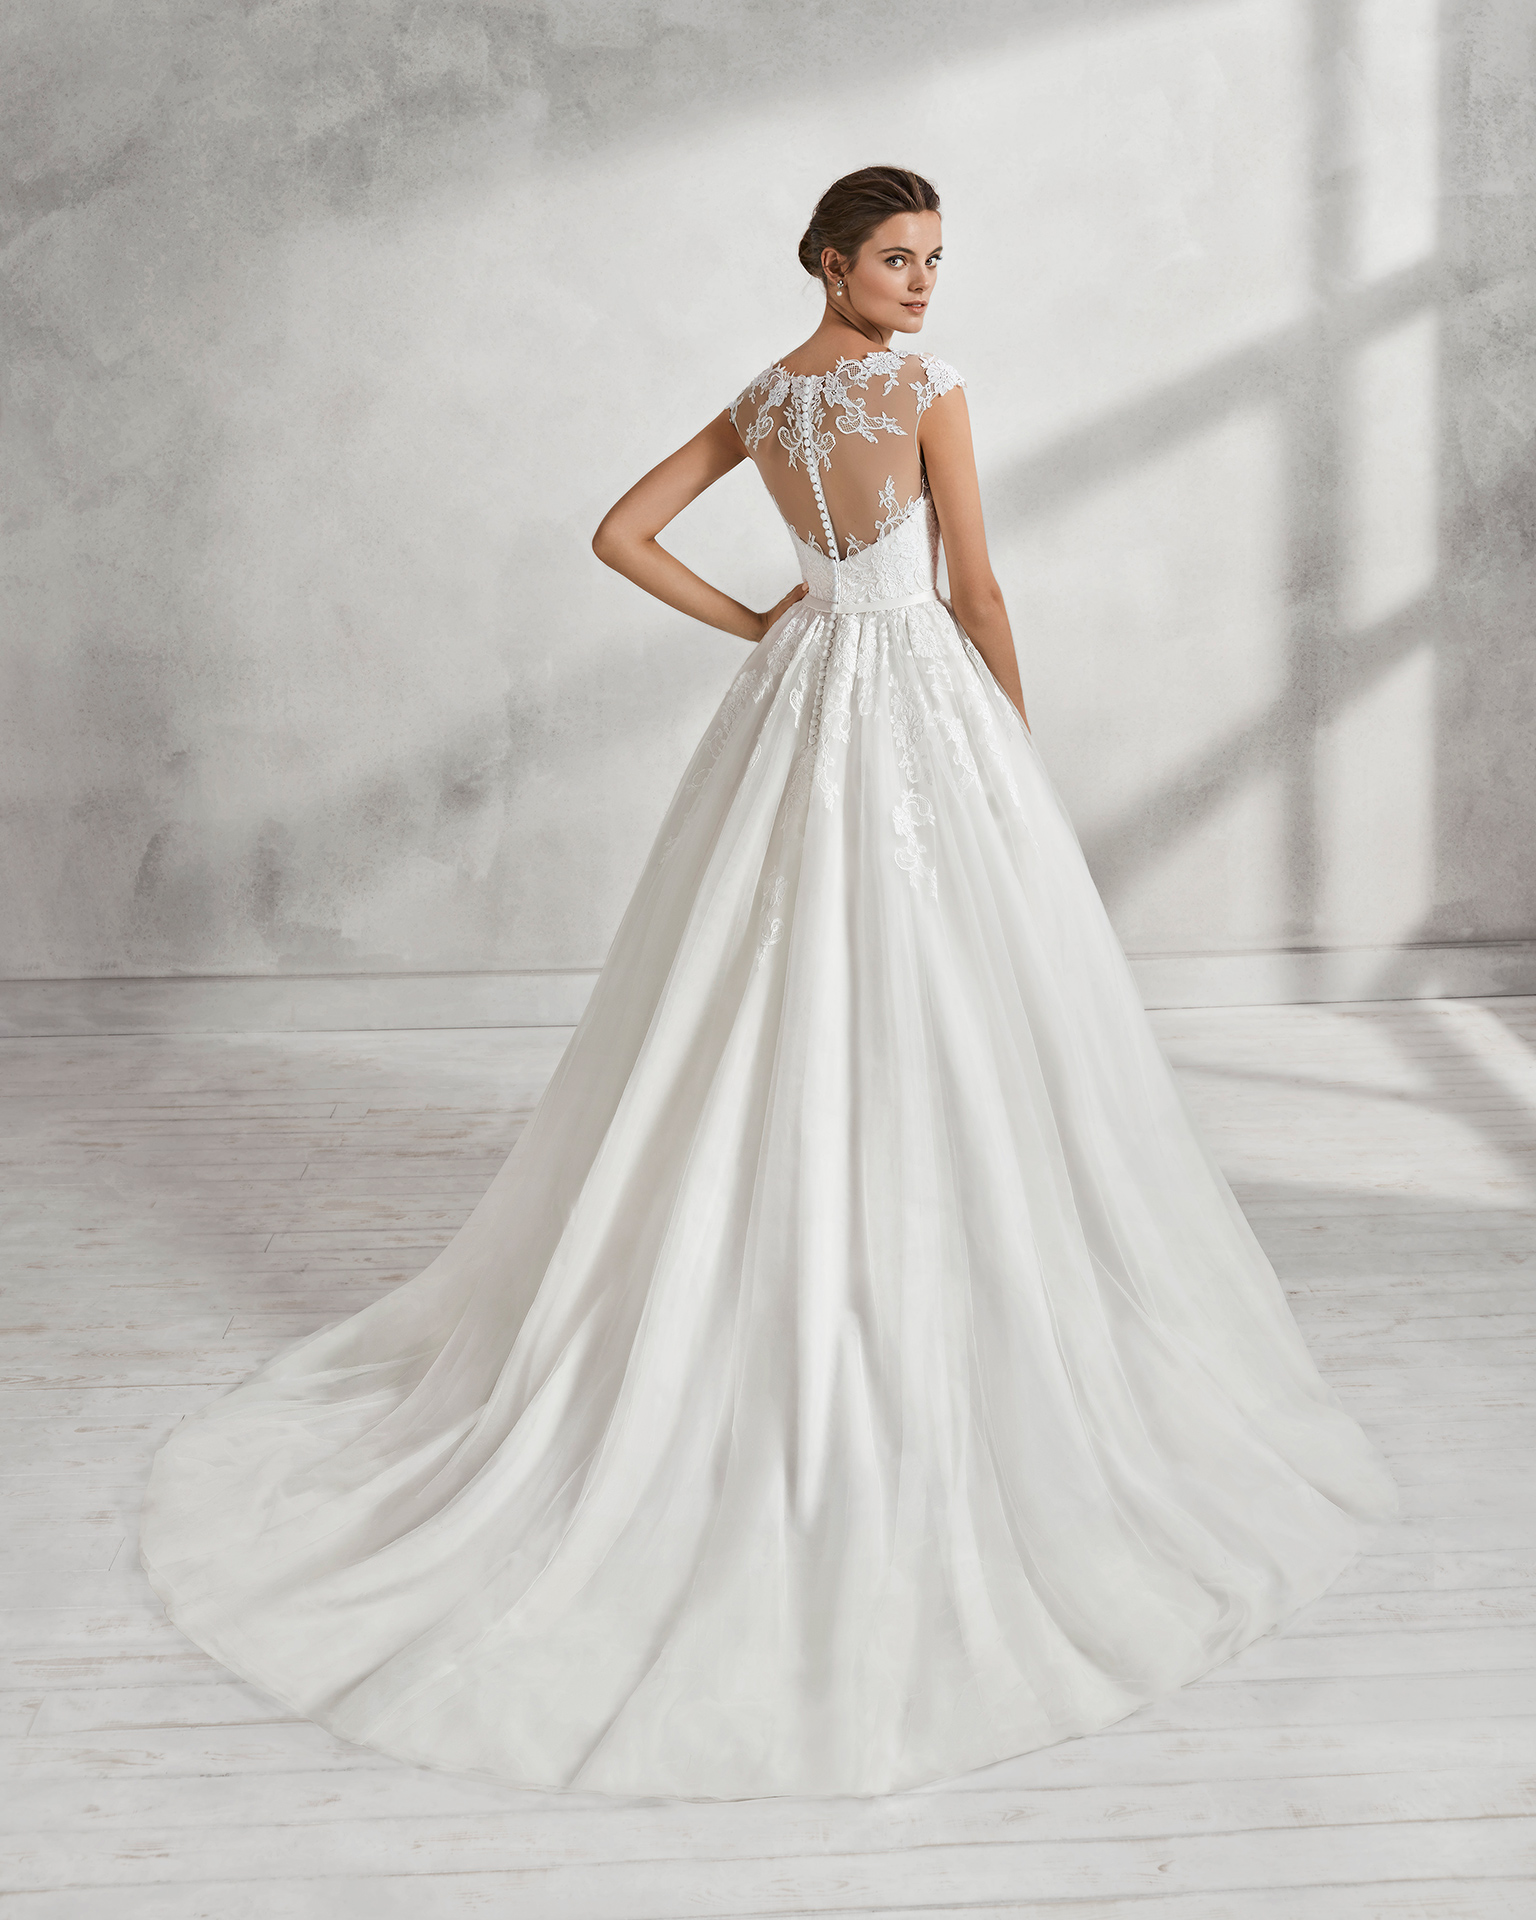 Romantic-style tulle and lace wedding dress with illusion neckline, low back and beaded appliqués, in natural and white.